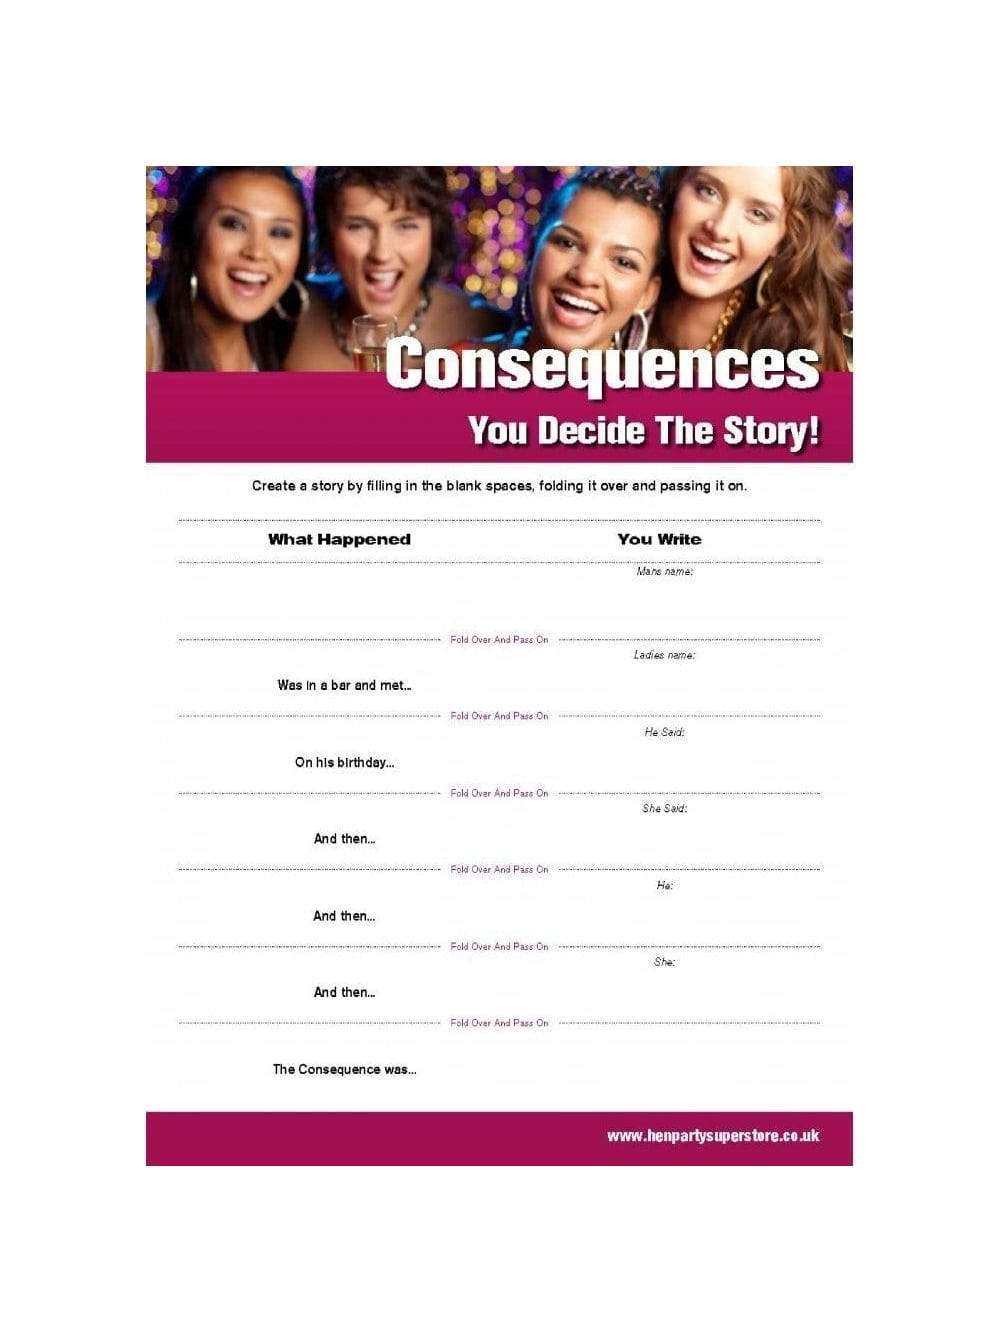 Consequences Free Hen Party Game | Hen Party Superstore